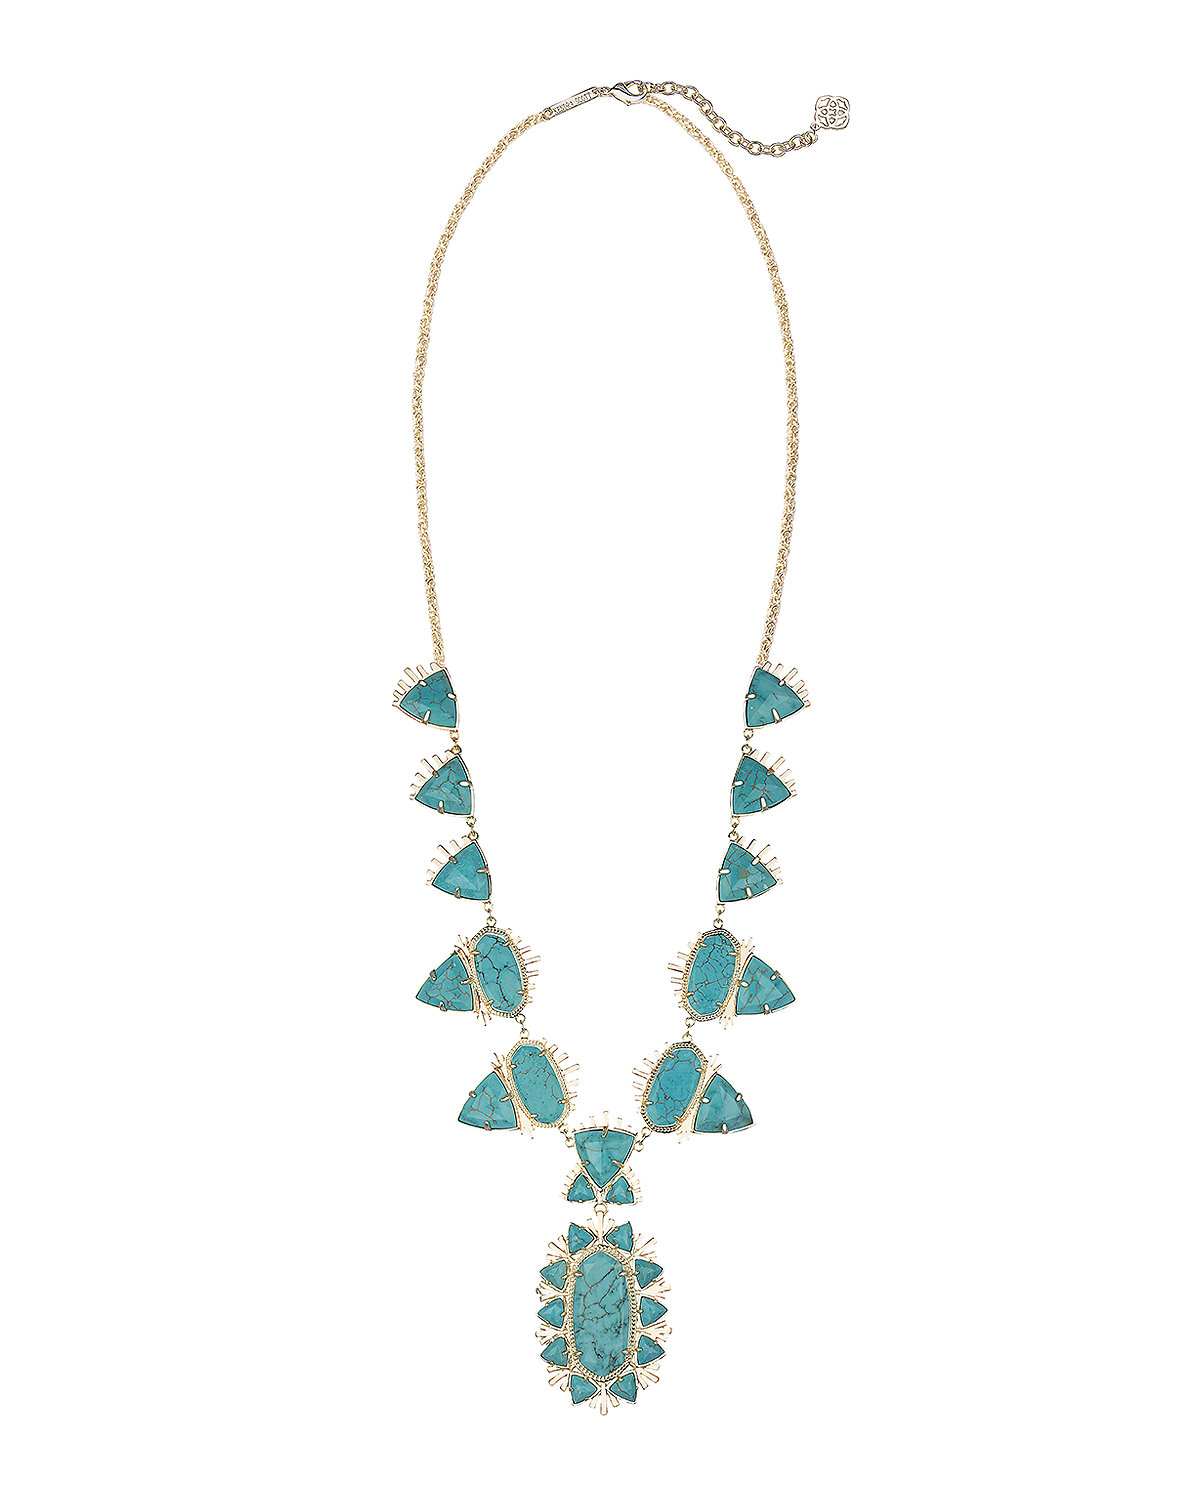 Havana Long Necklace, Iridescent